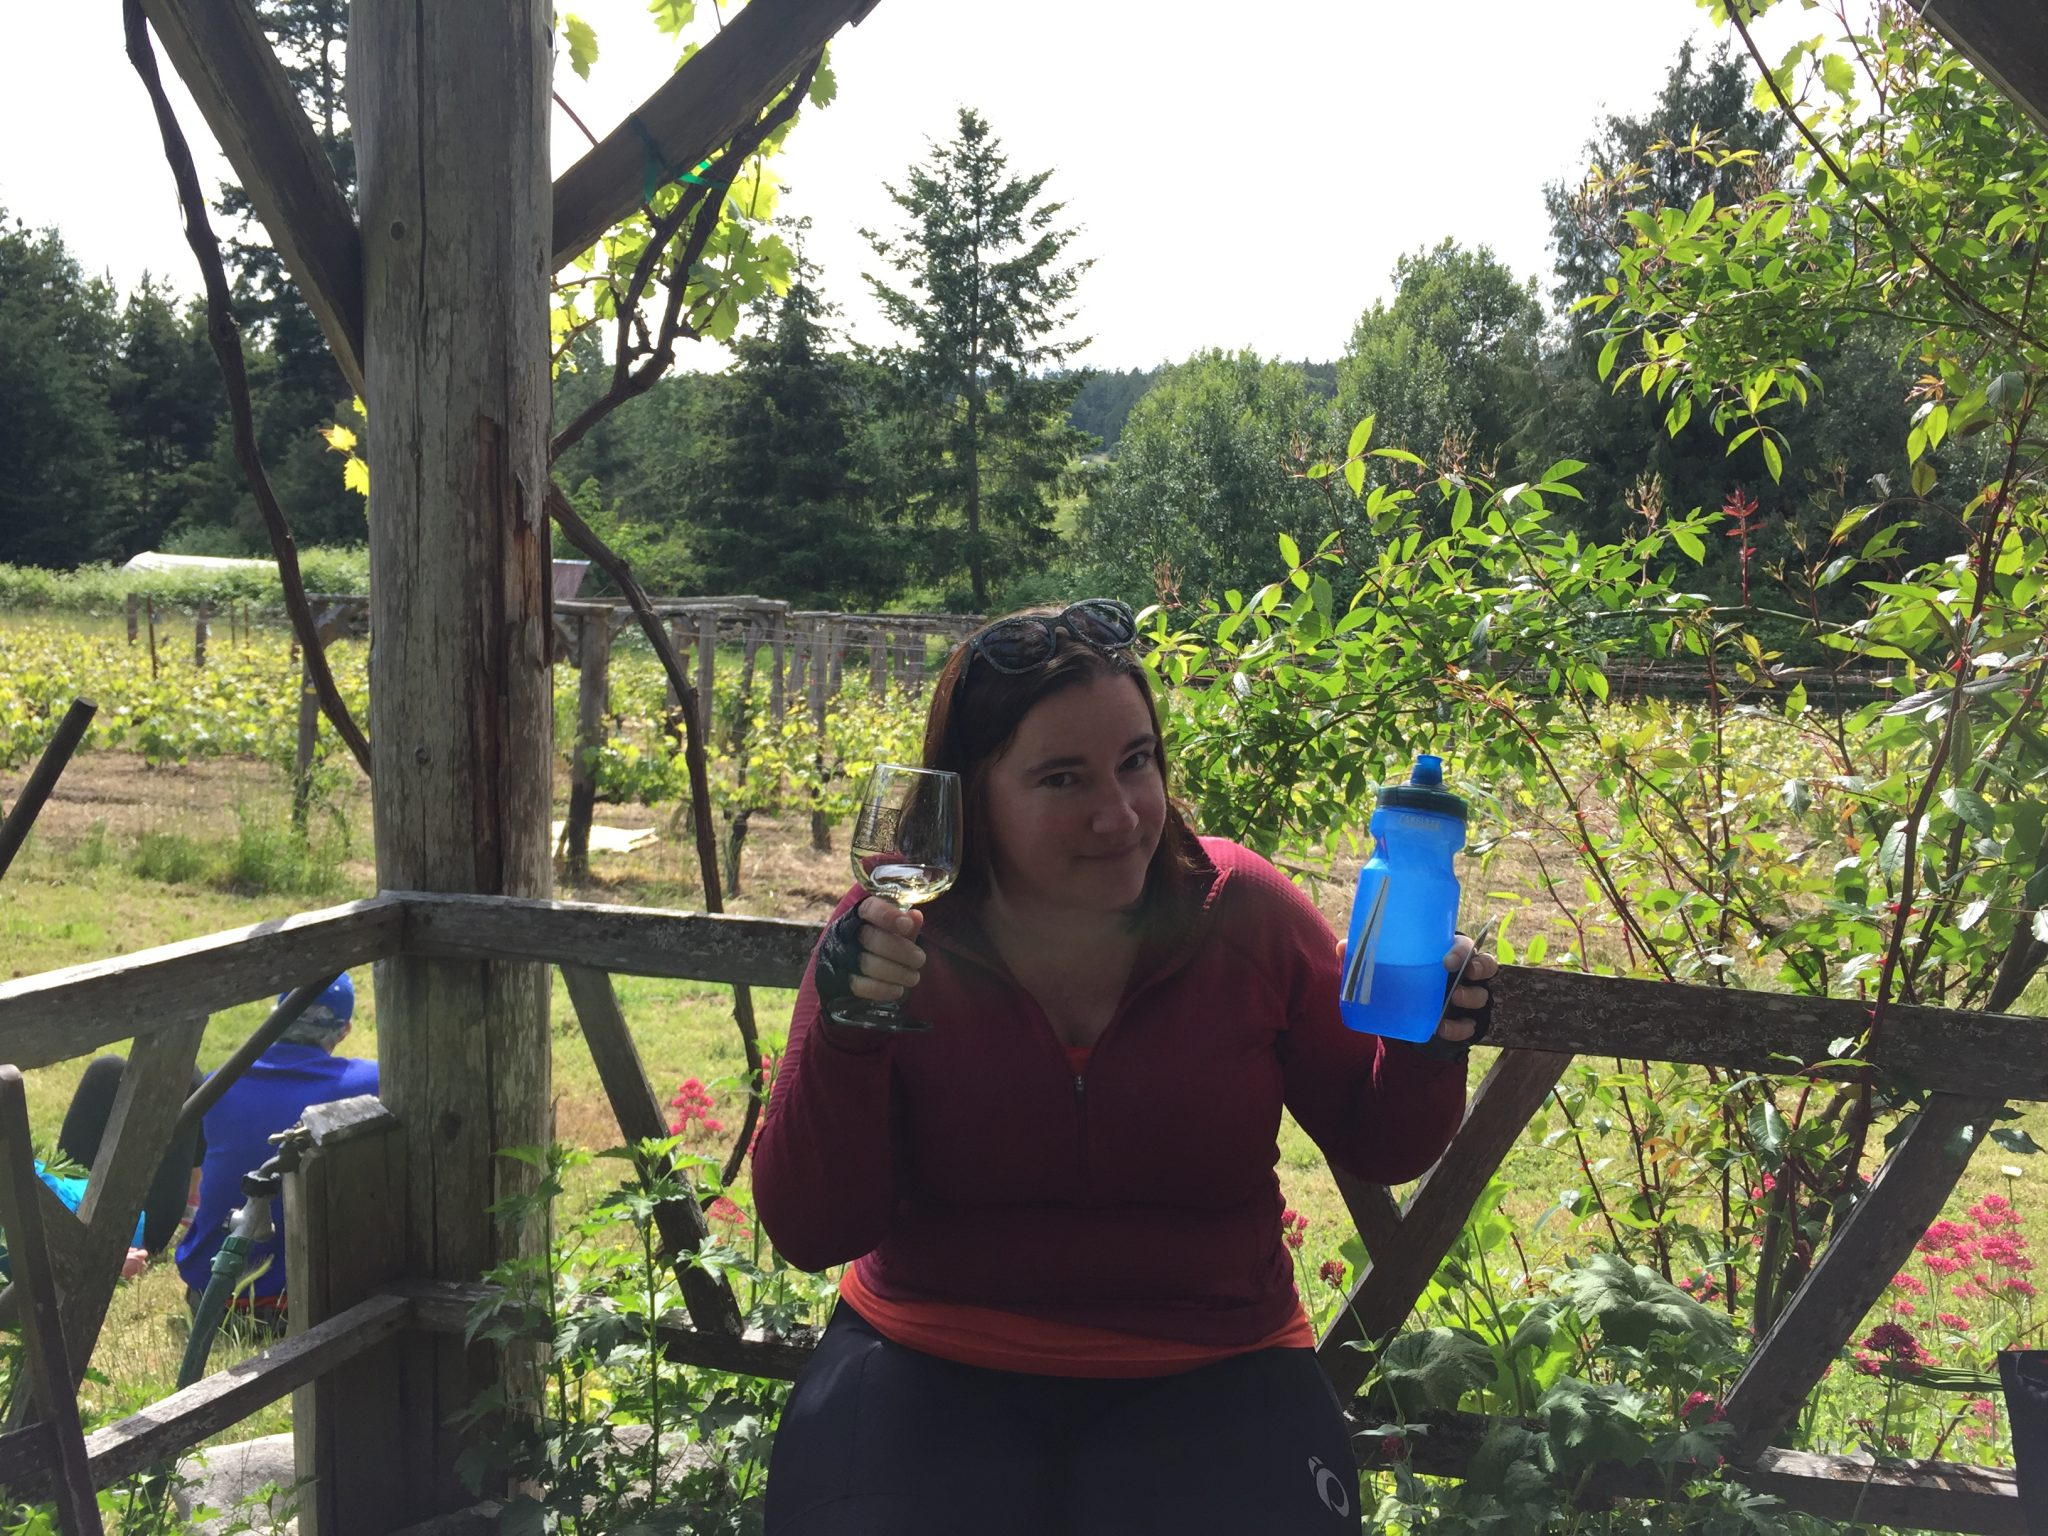 A woman is smiling on a patio in a vineyard. She is holding a wine glass and a biking waterbottle